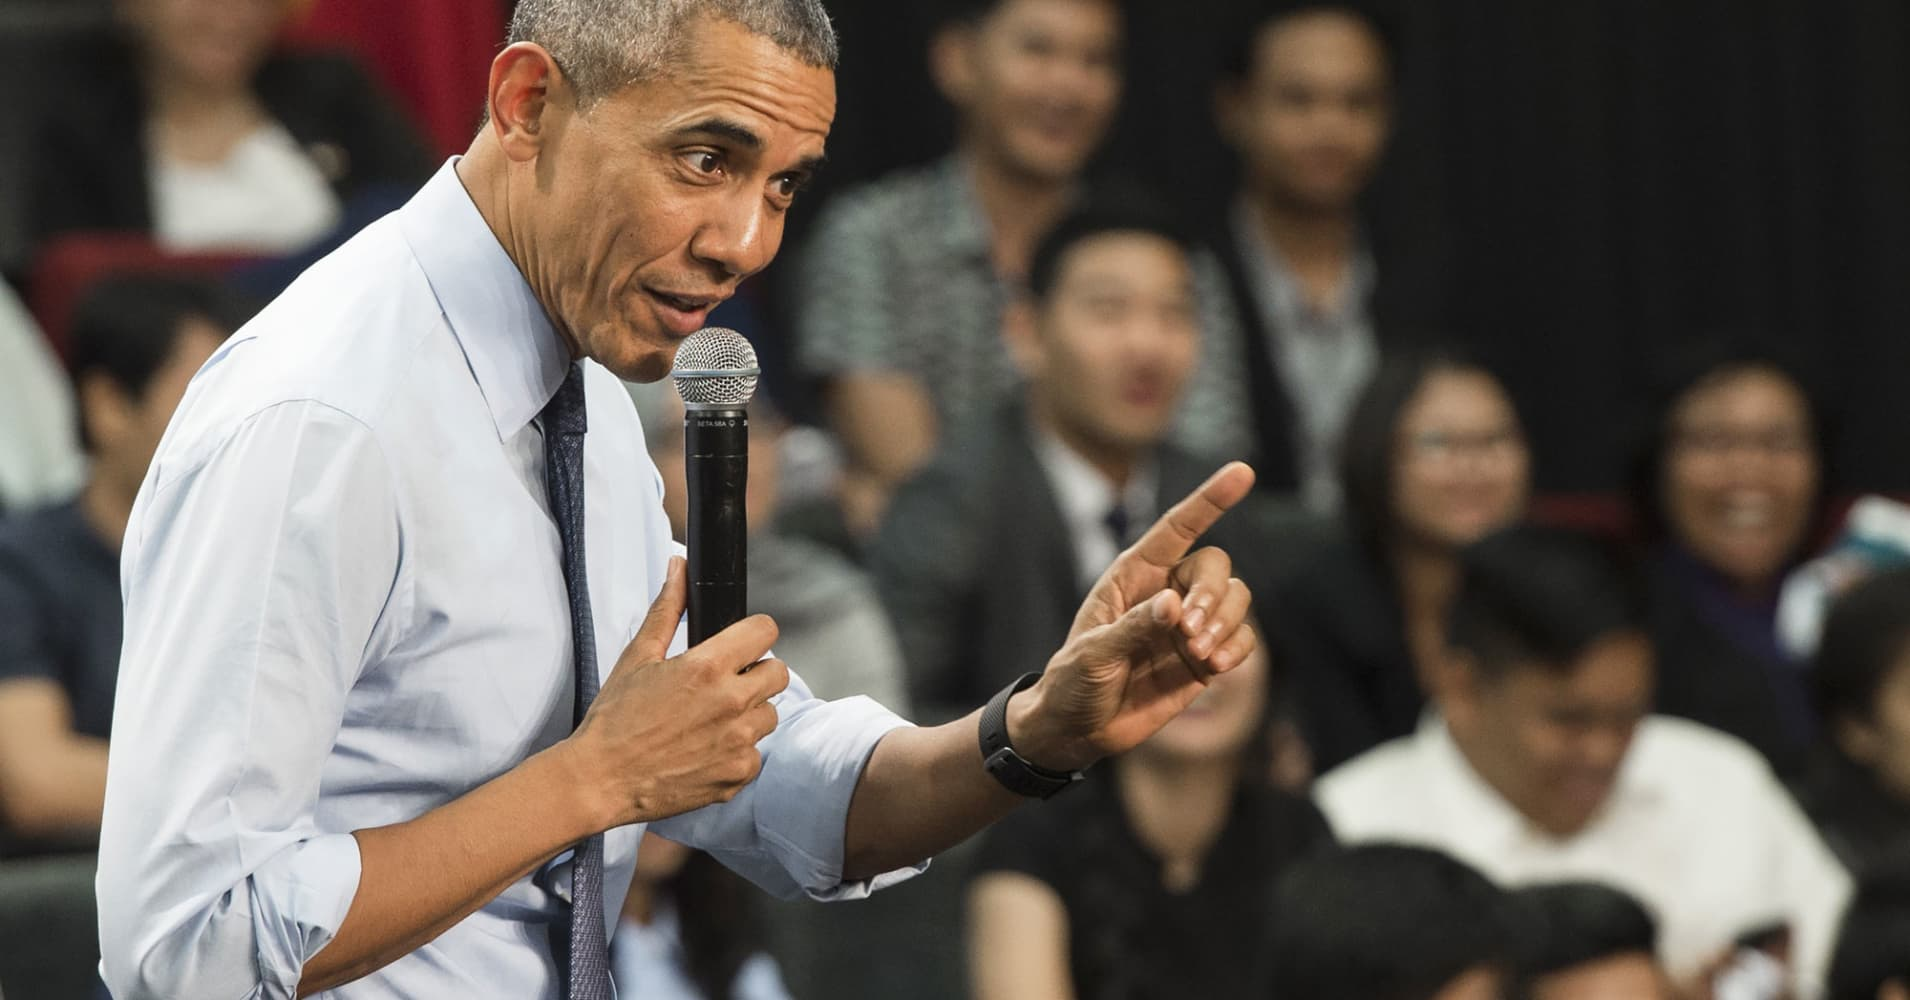 President Barack Obama answers a question during a town hall.